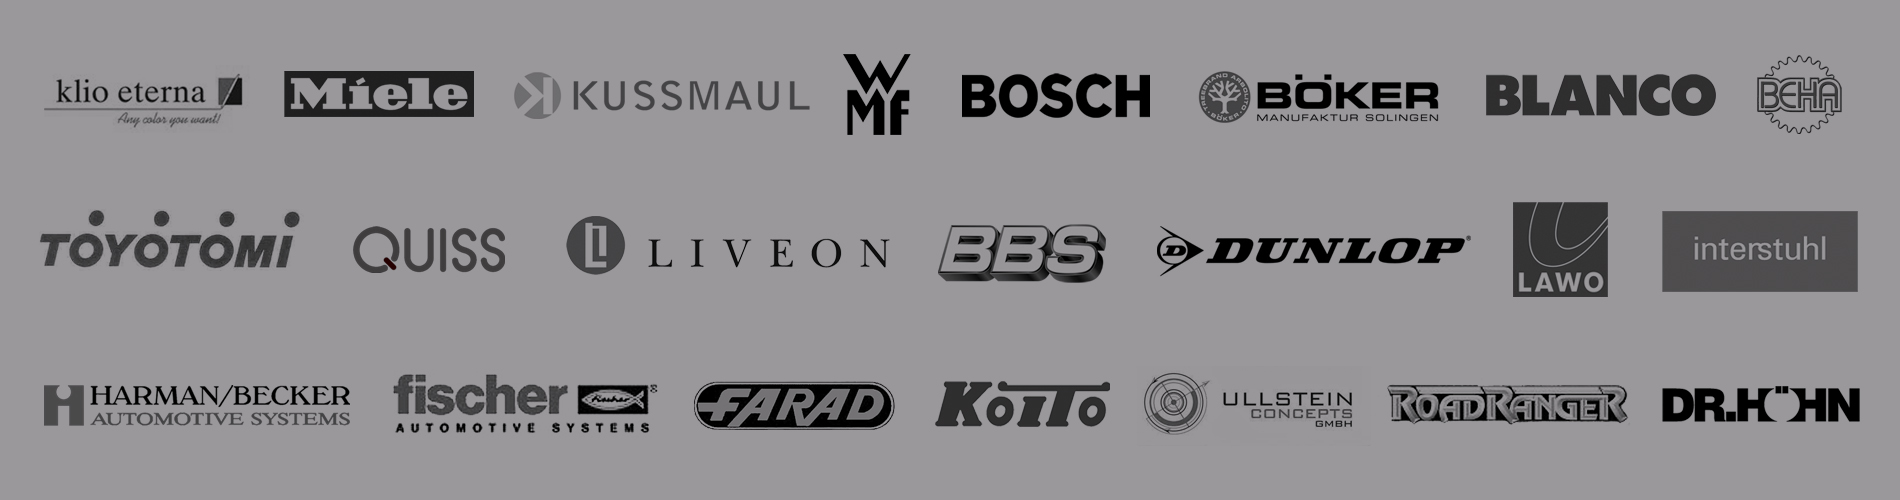 Vitovision creates the industrial design for many well-known brands like Miele, Kussmaul, WMF, Bosch, Böker, BBS and many others